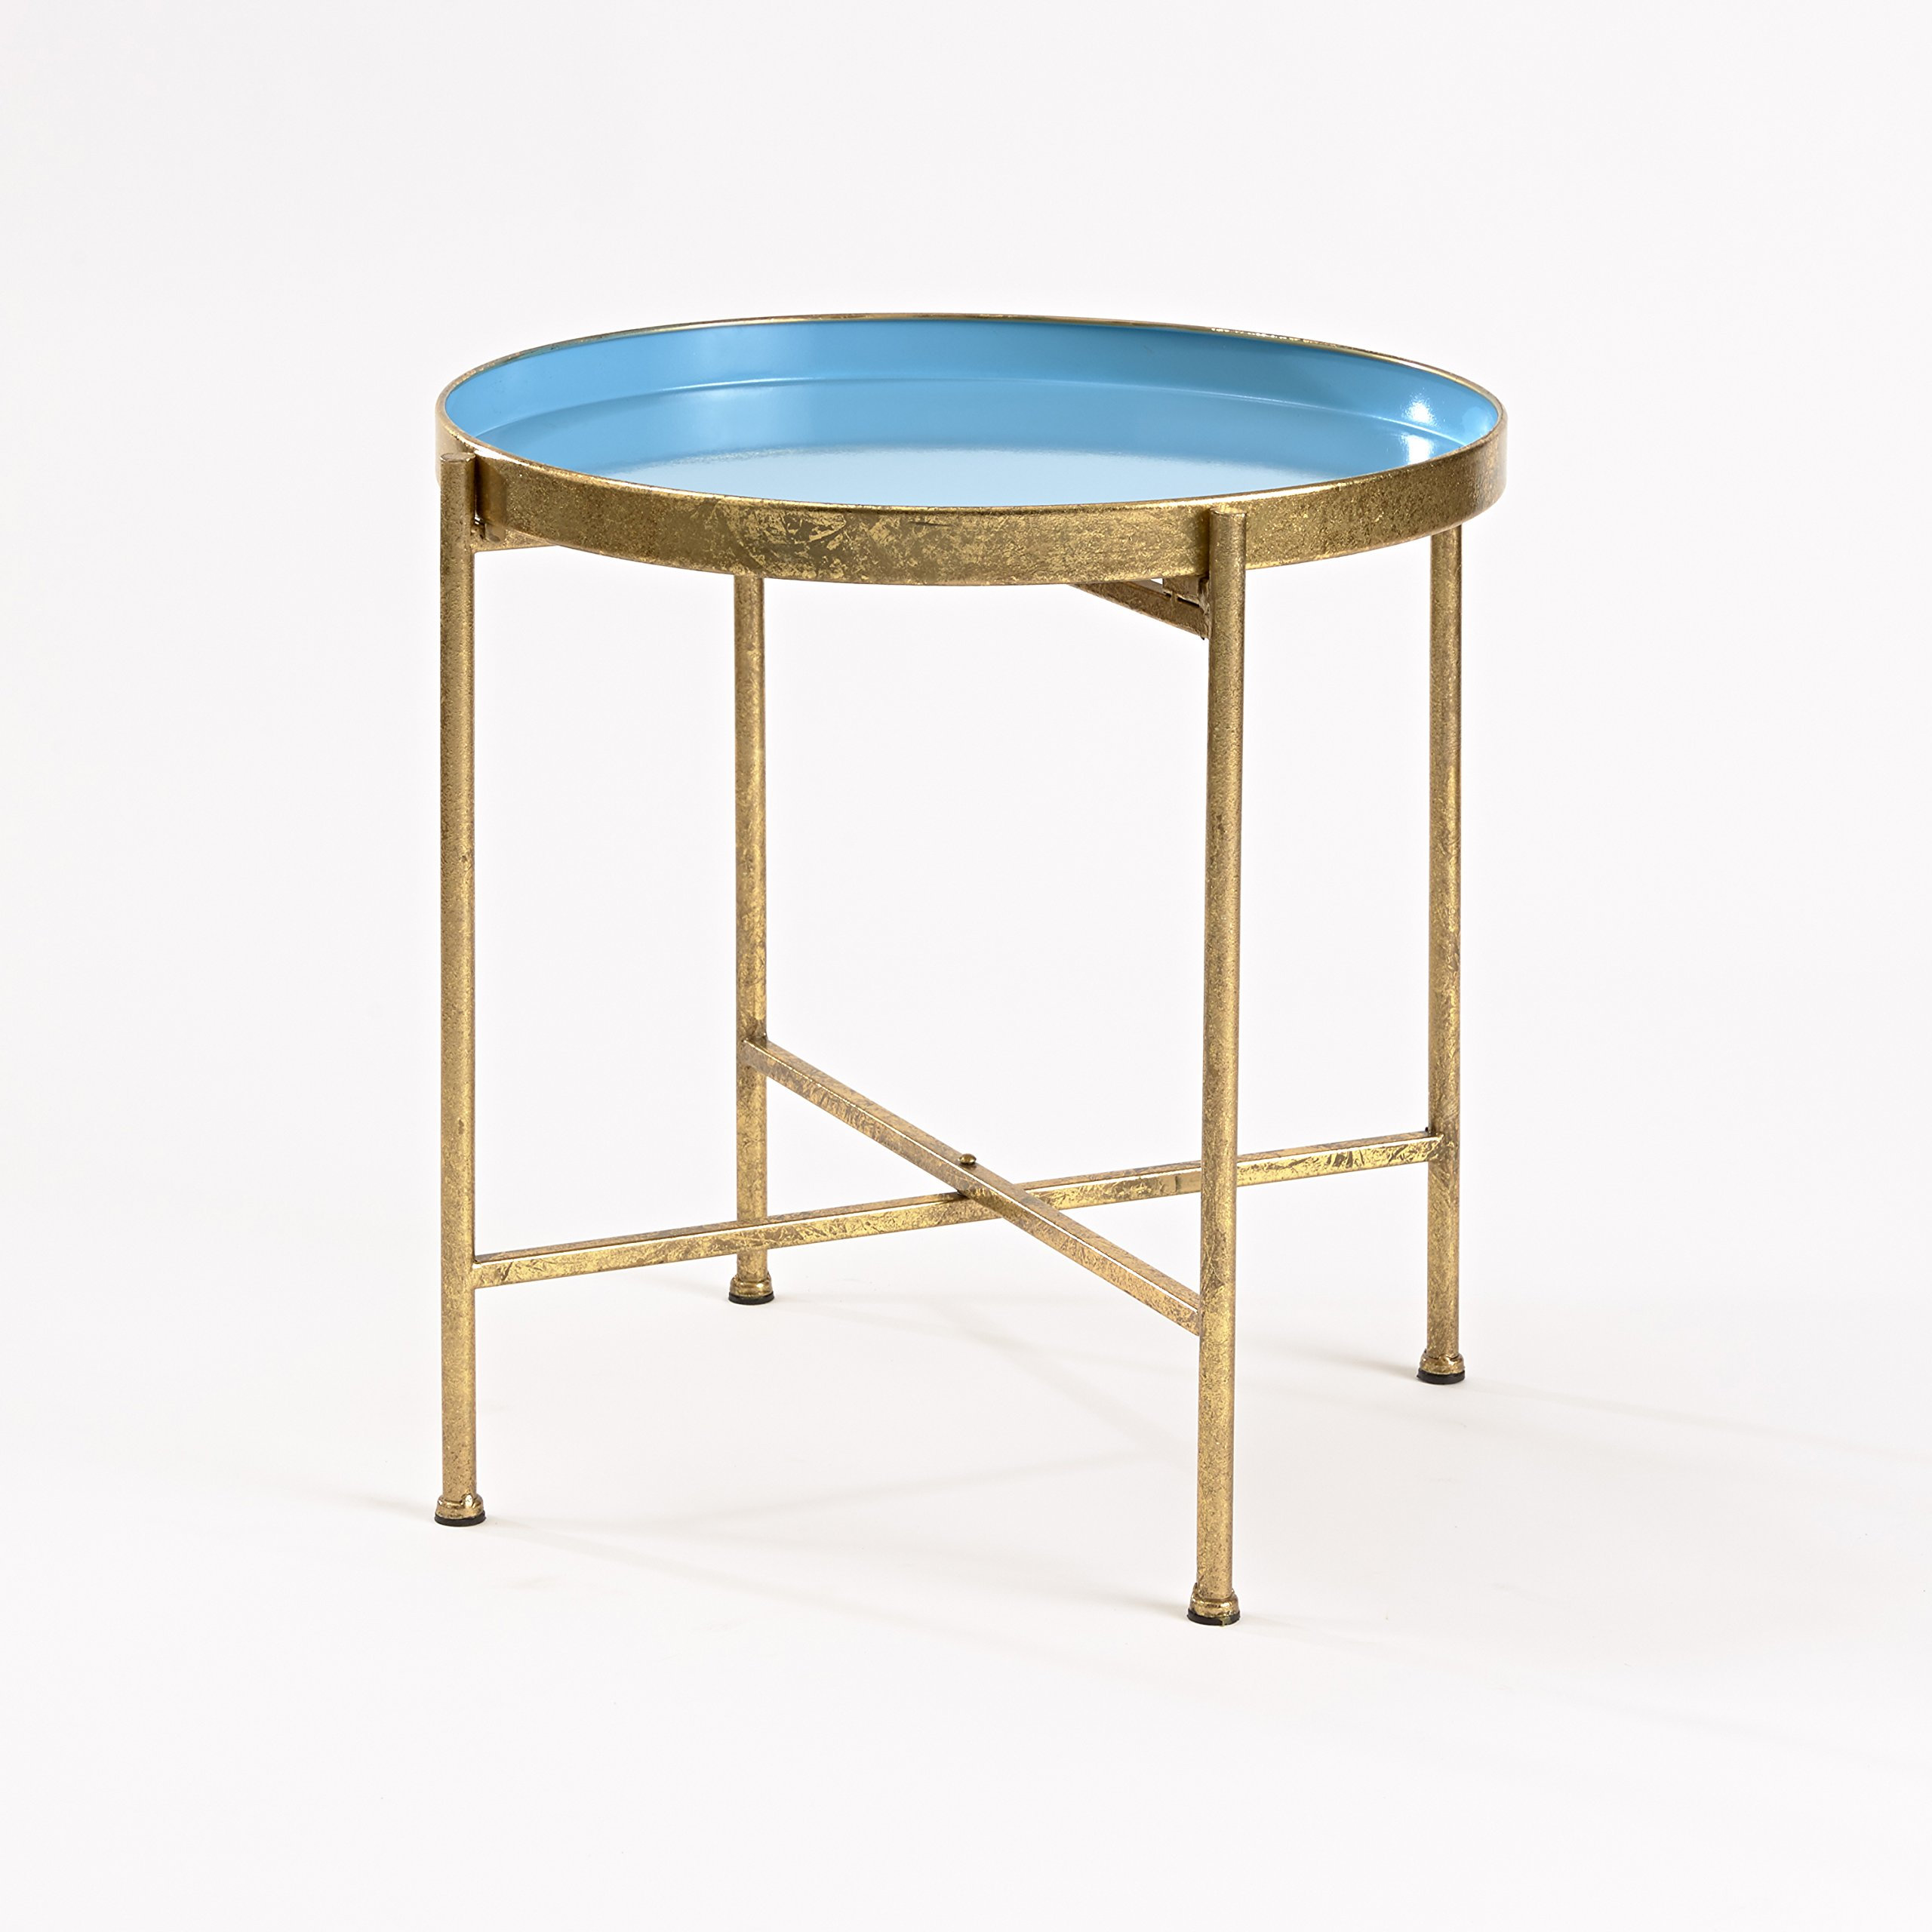 InnerSpace Luxury Products Gild Pop Up Tray Table, Large, Blue